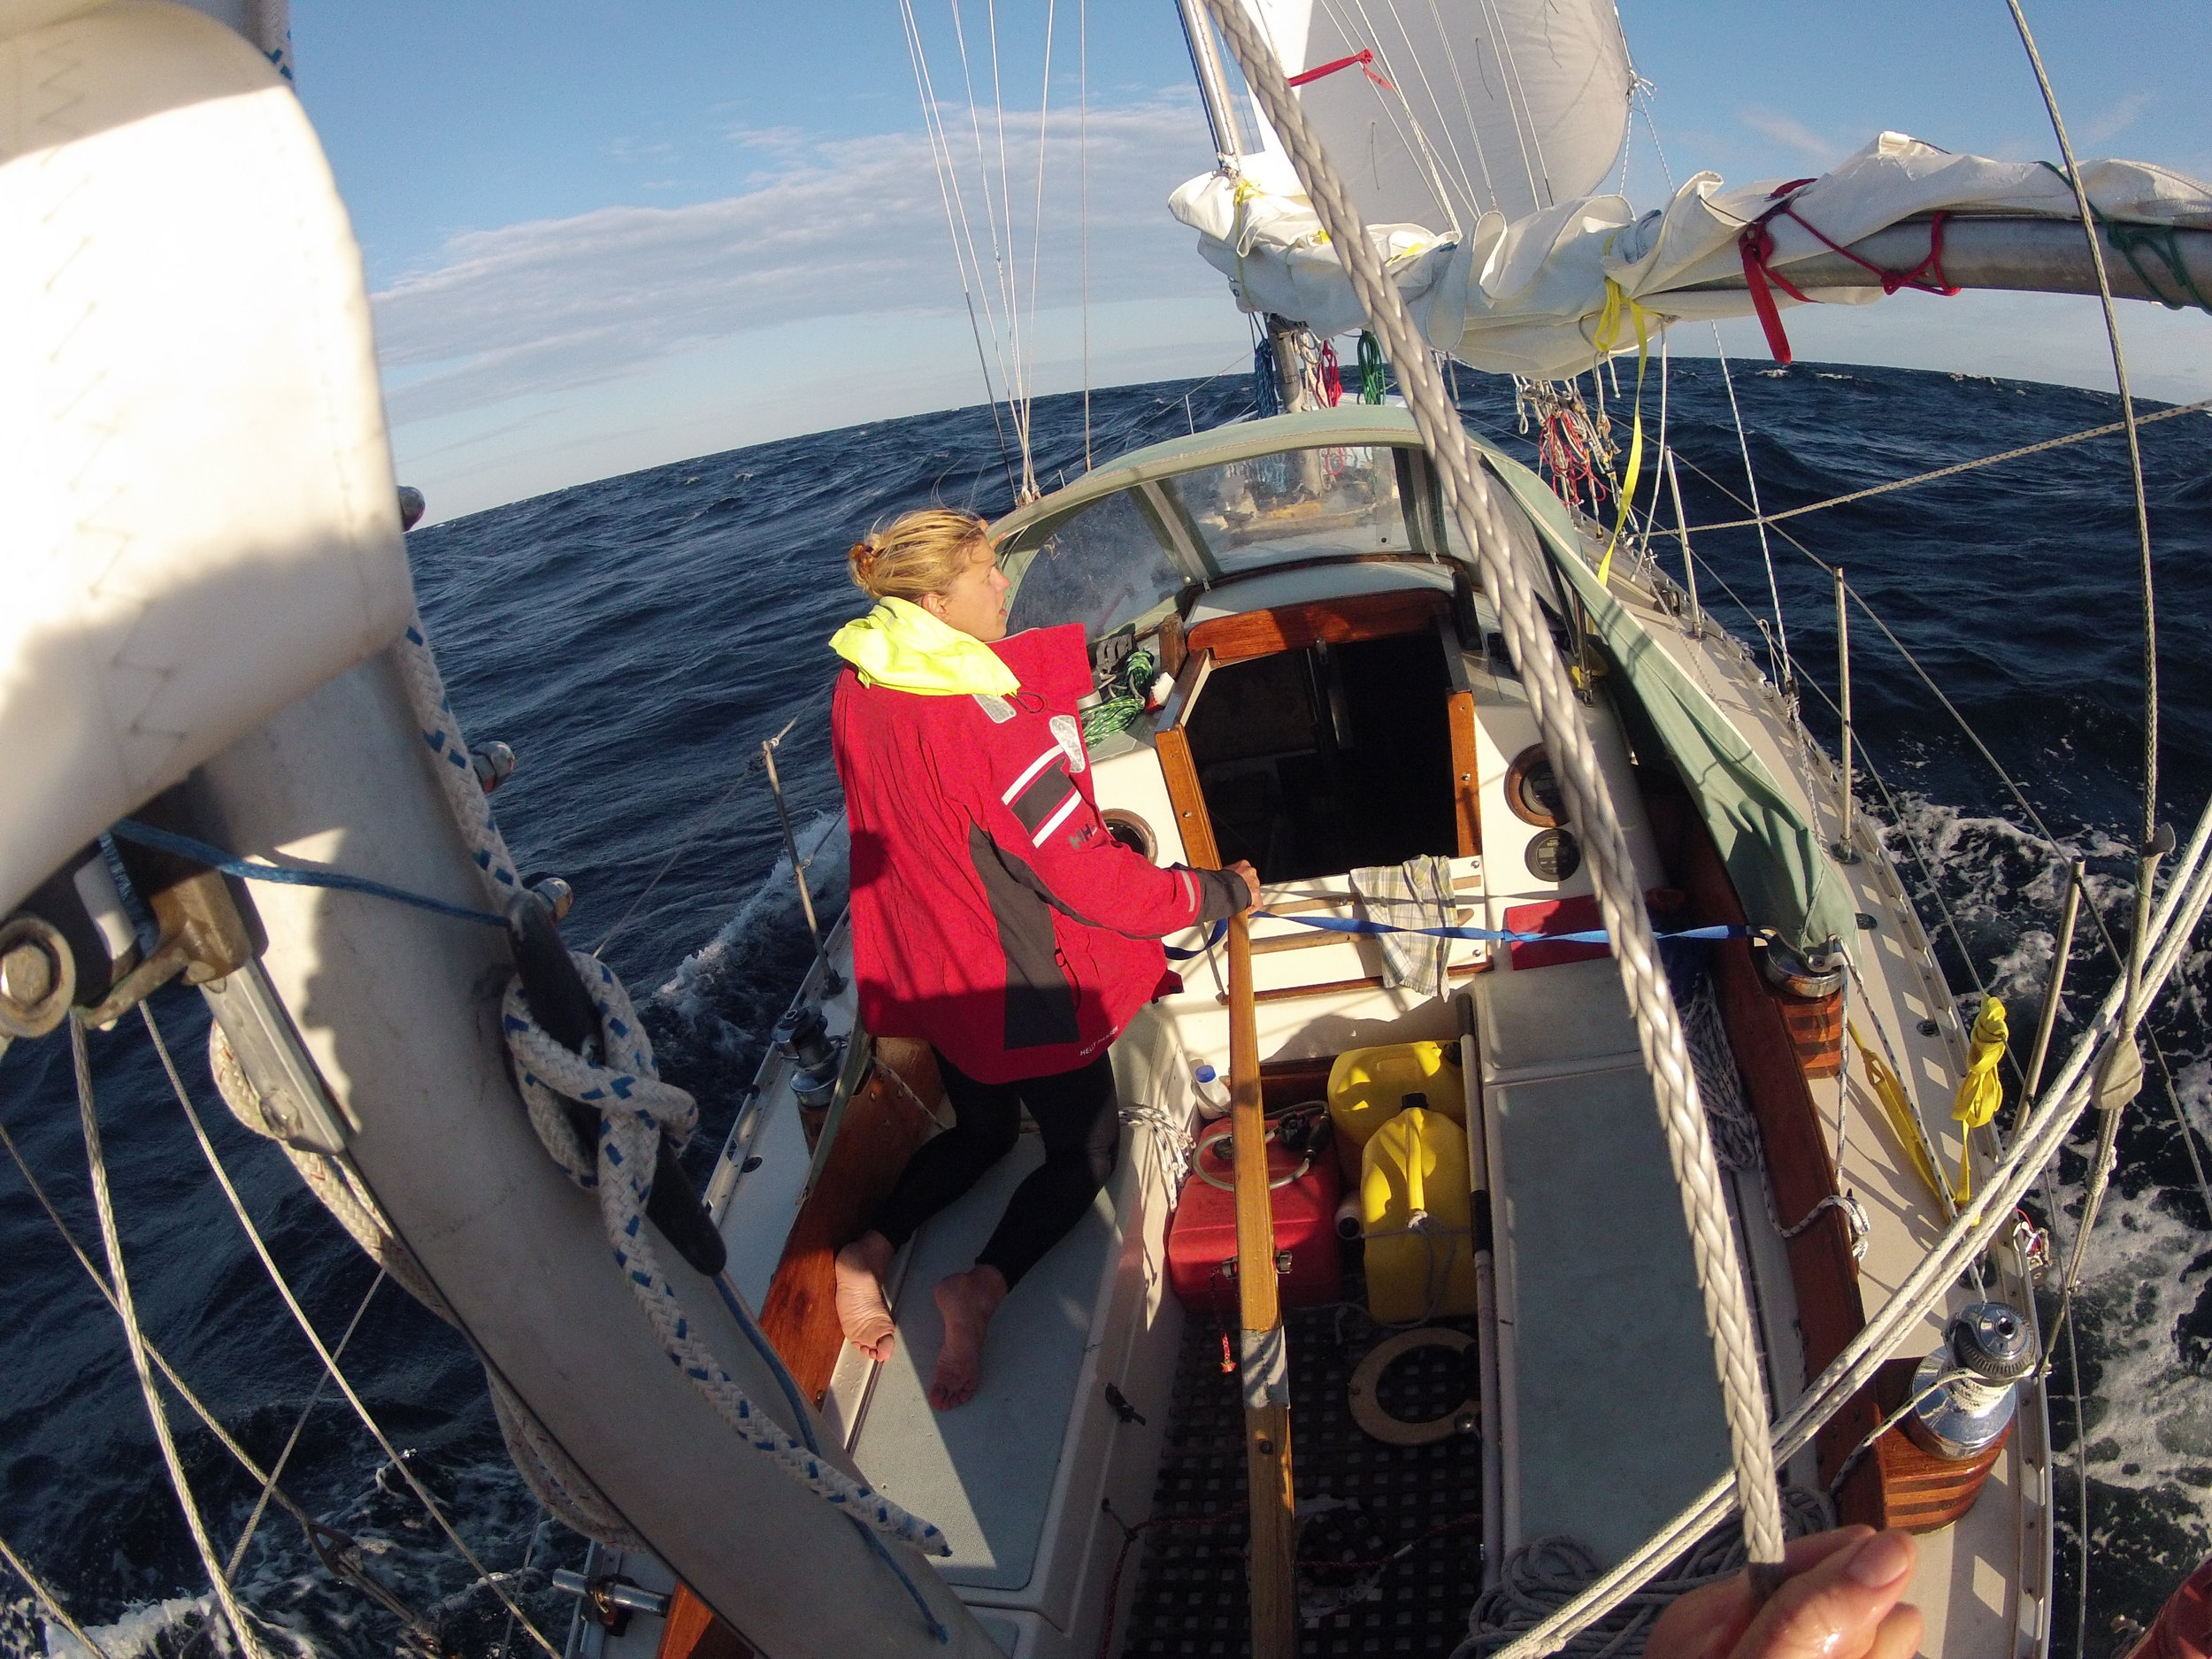 Sailing across the North Sea, next stop Sweden! Summer 2012